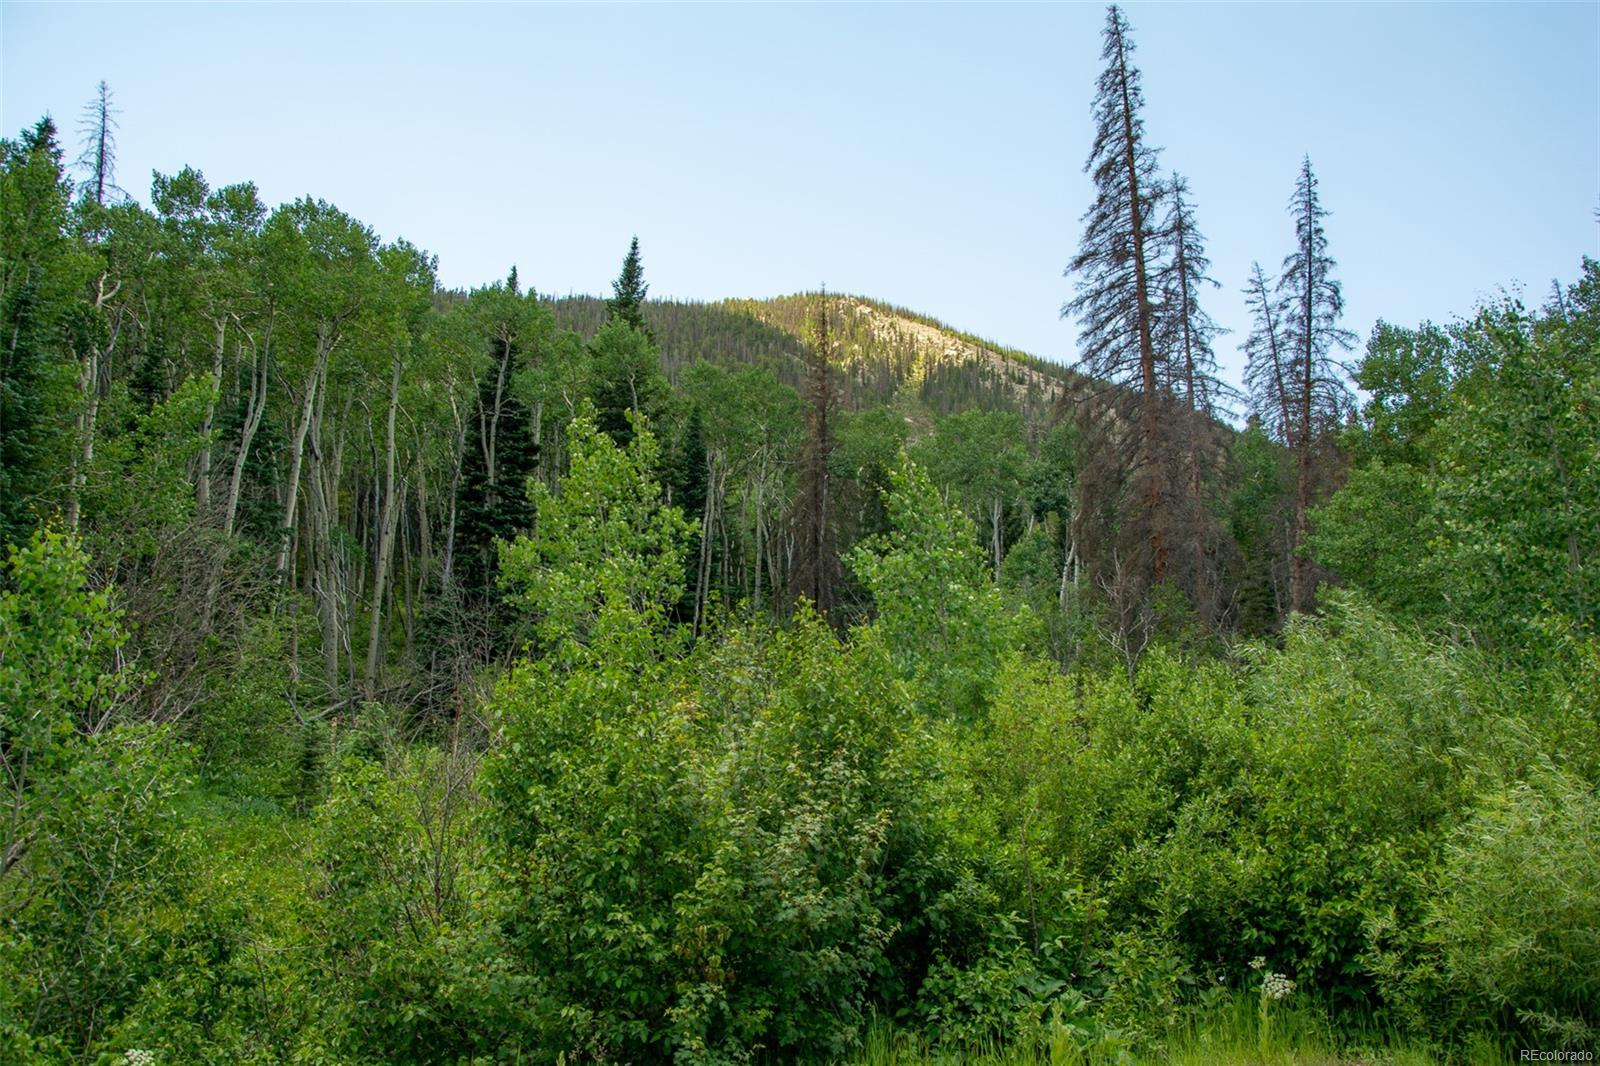 000 Jones Street, Garfield, CO 81201 - Garfield, CO real estate listing